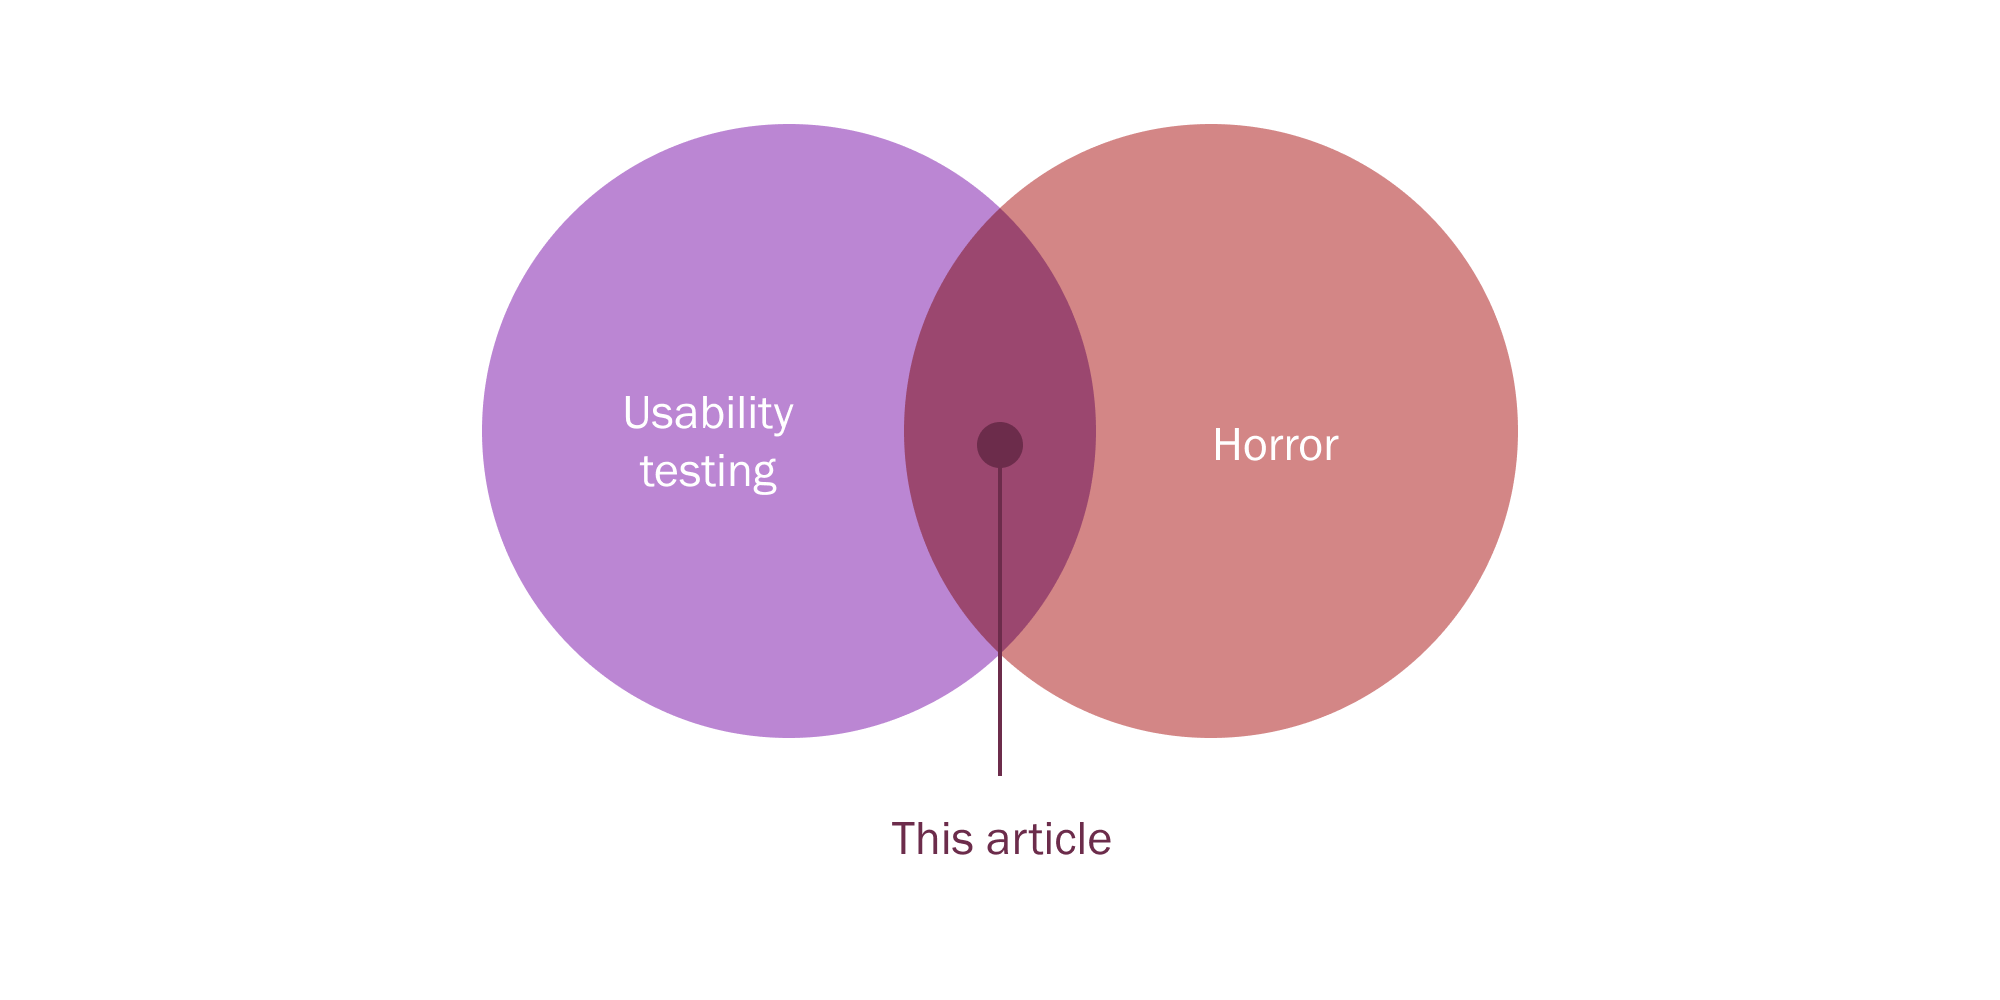 A venn diagram in which usability testing and horror slightly overlap; the overlap is what this article is about.